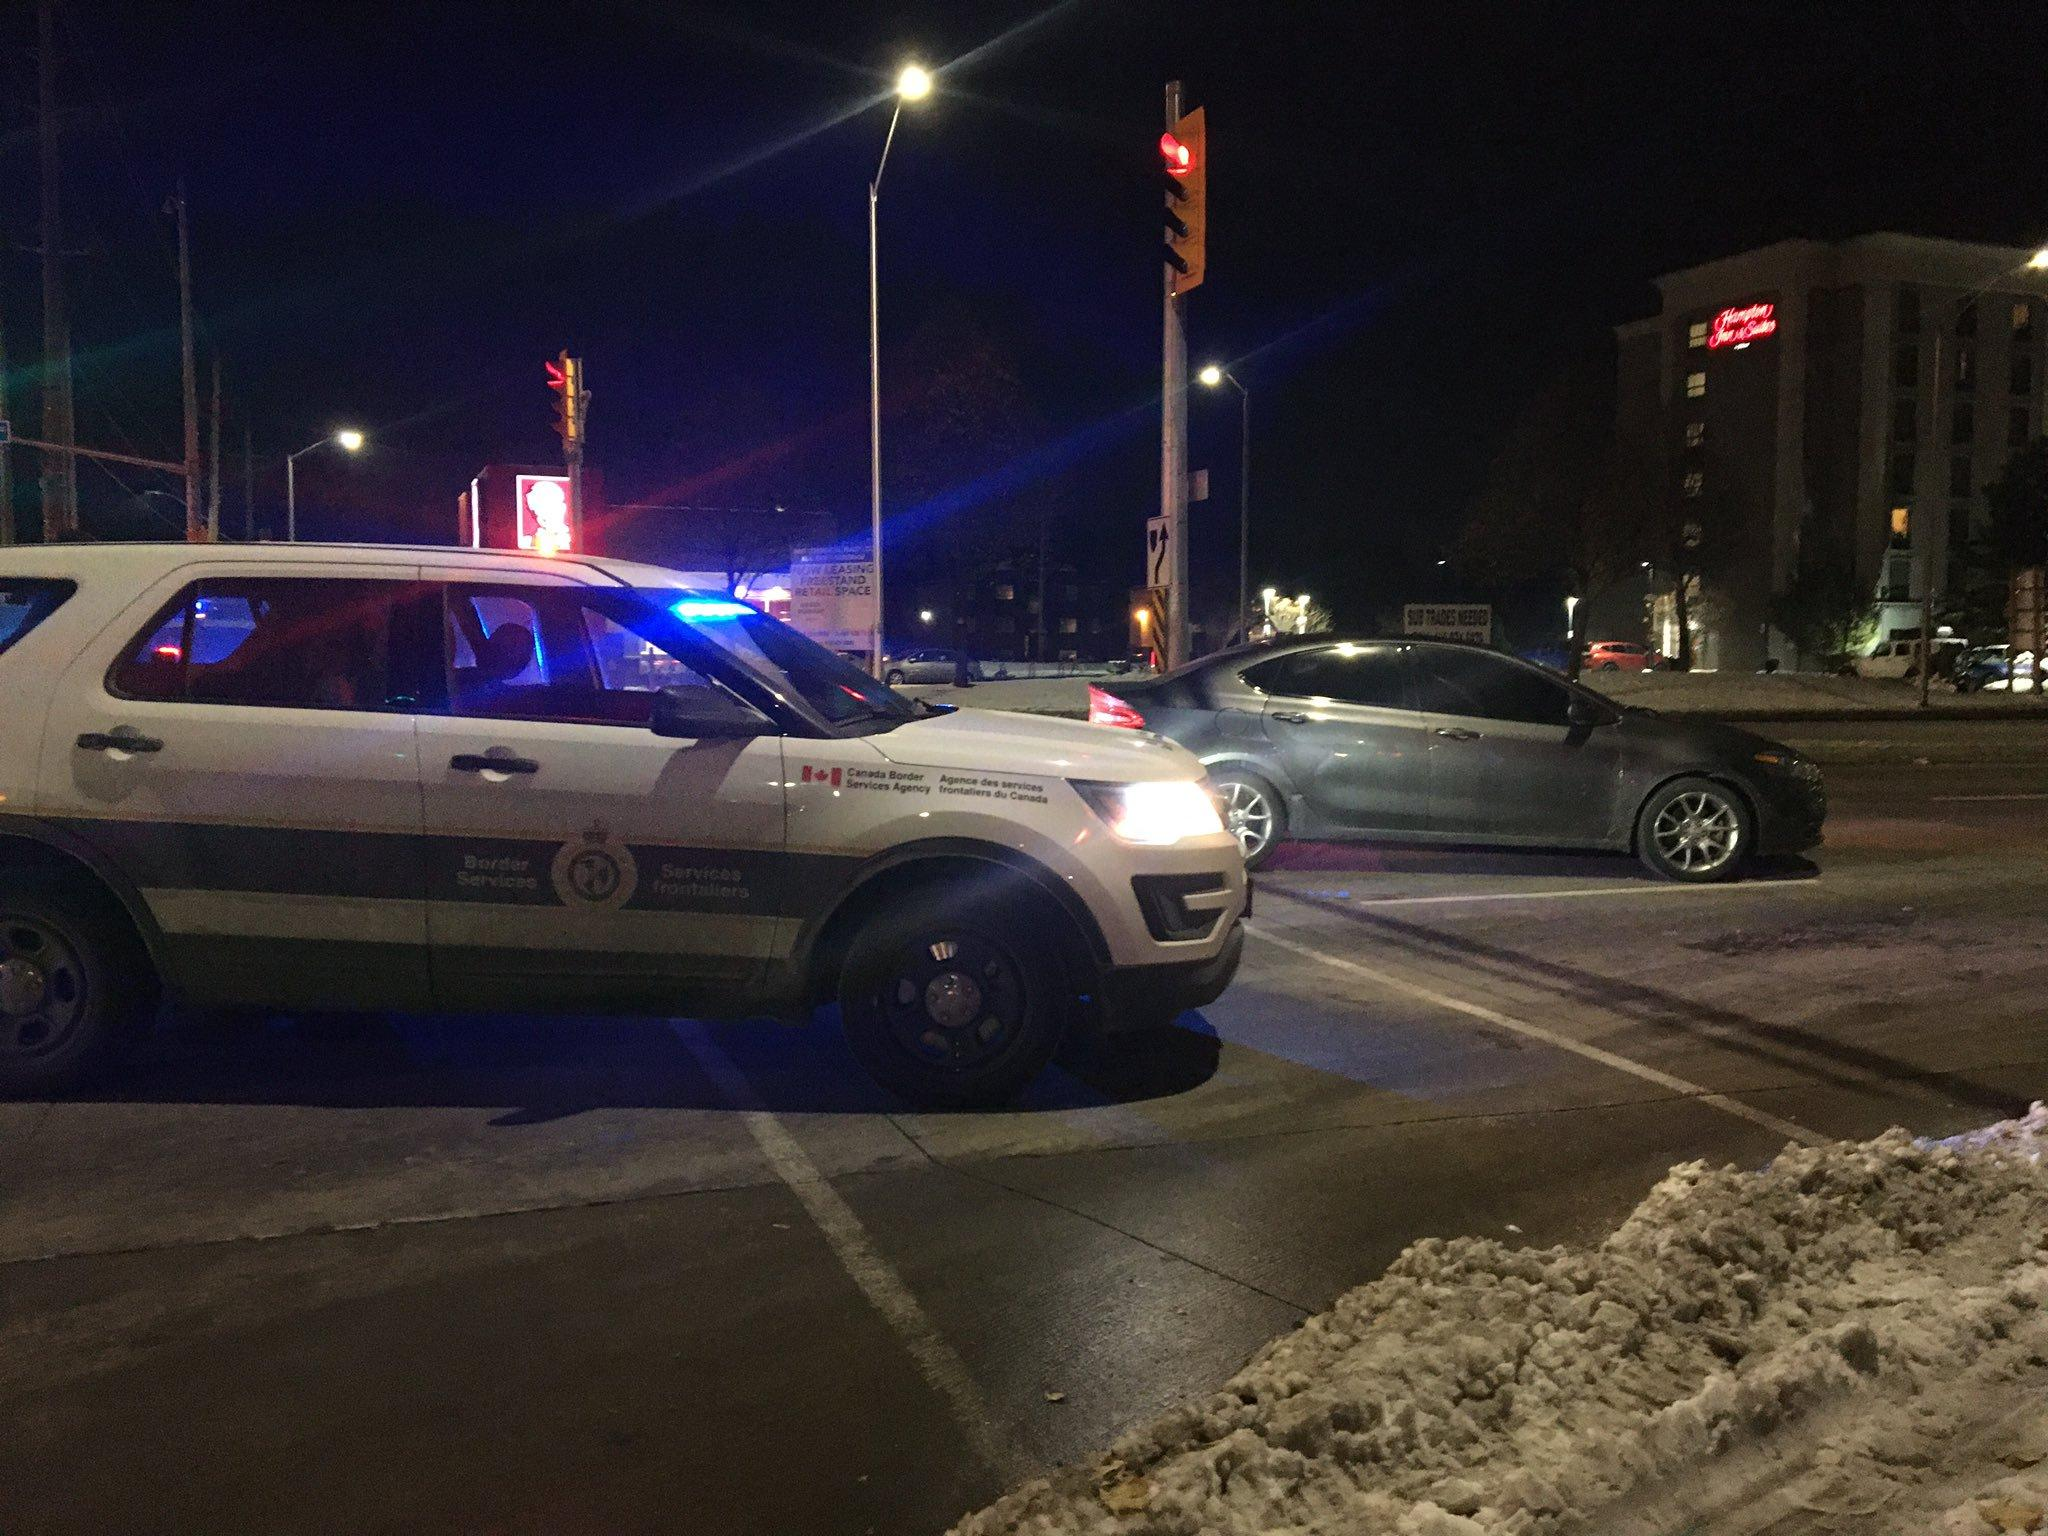 am800-news-pedestrian-struck-huron-church-malden-west-windsor-november-15-2019